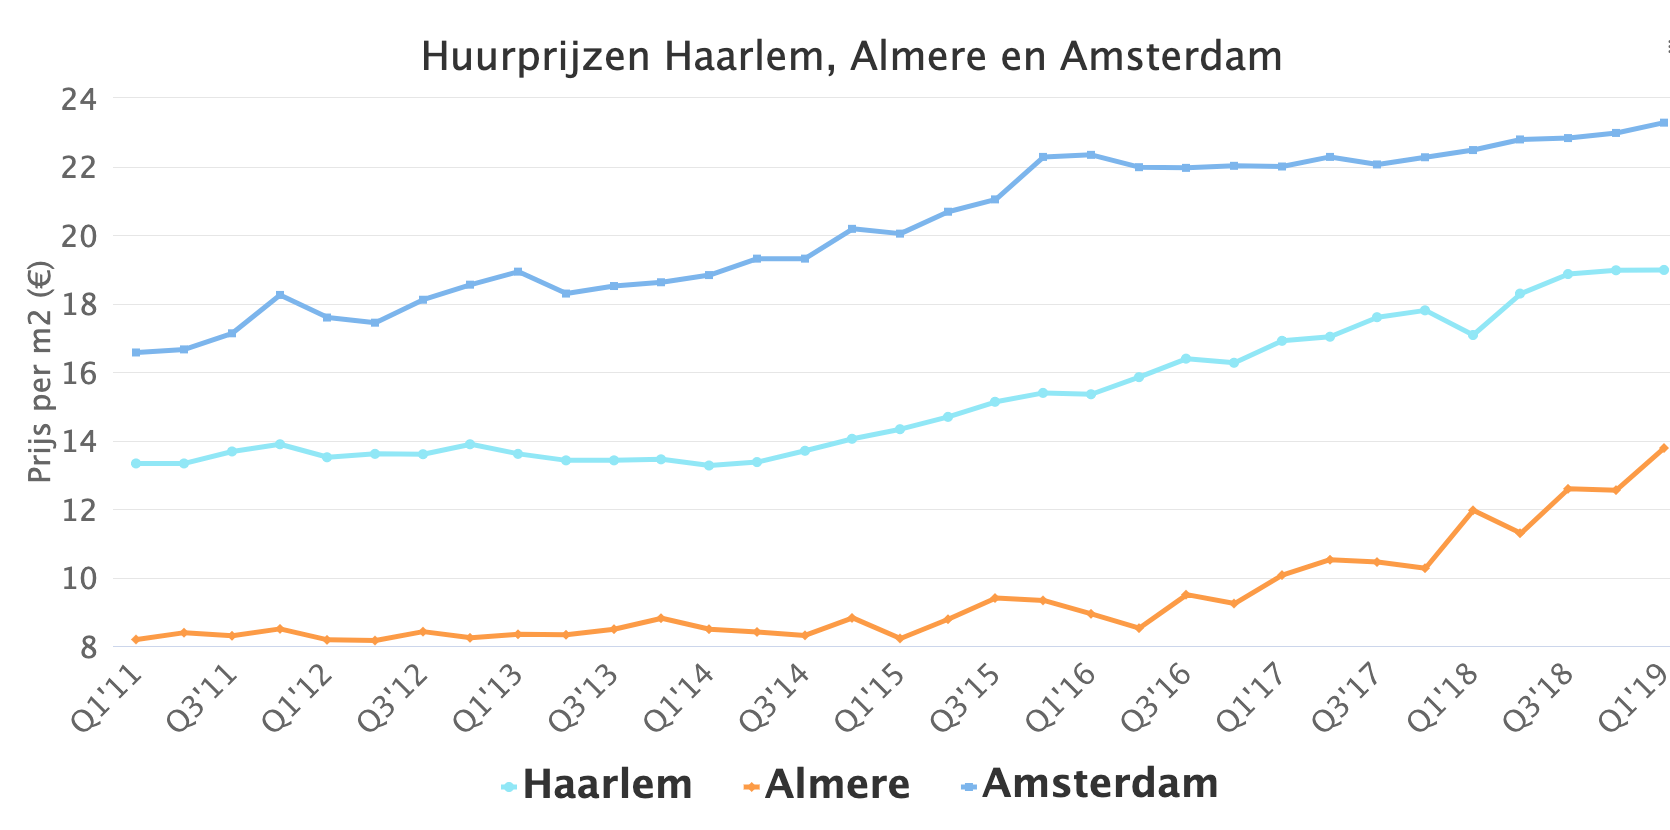 Rental prices Haarlem, Almere and Amsterdam